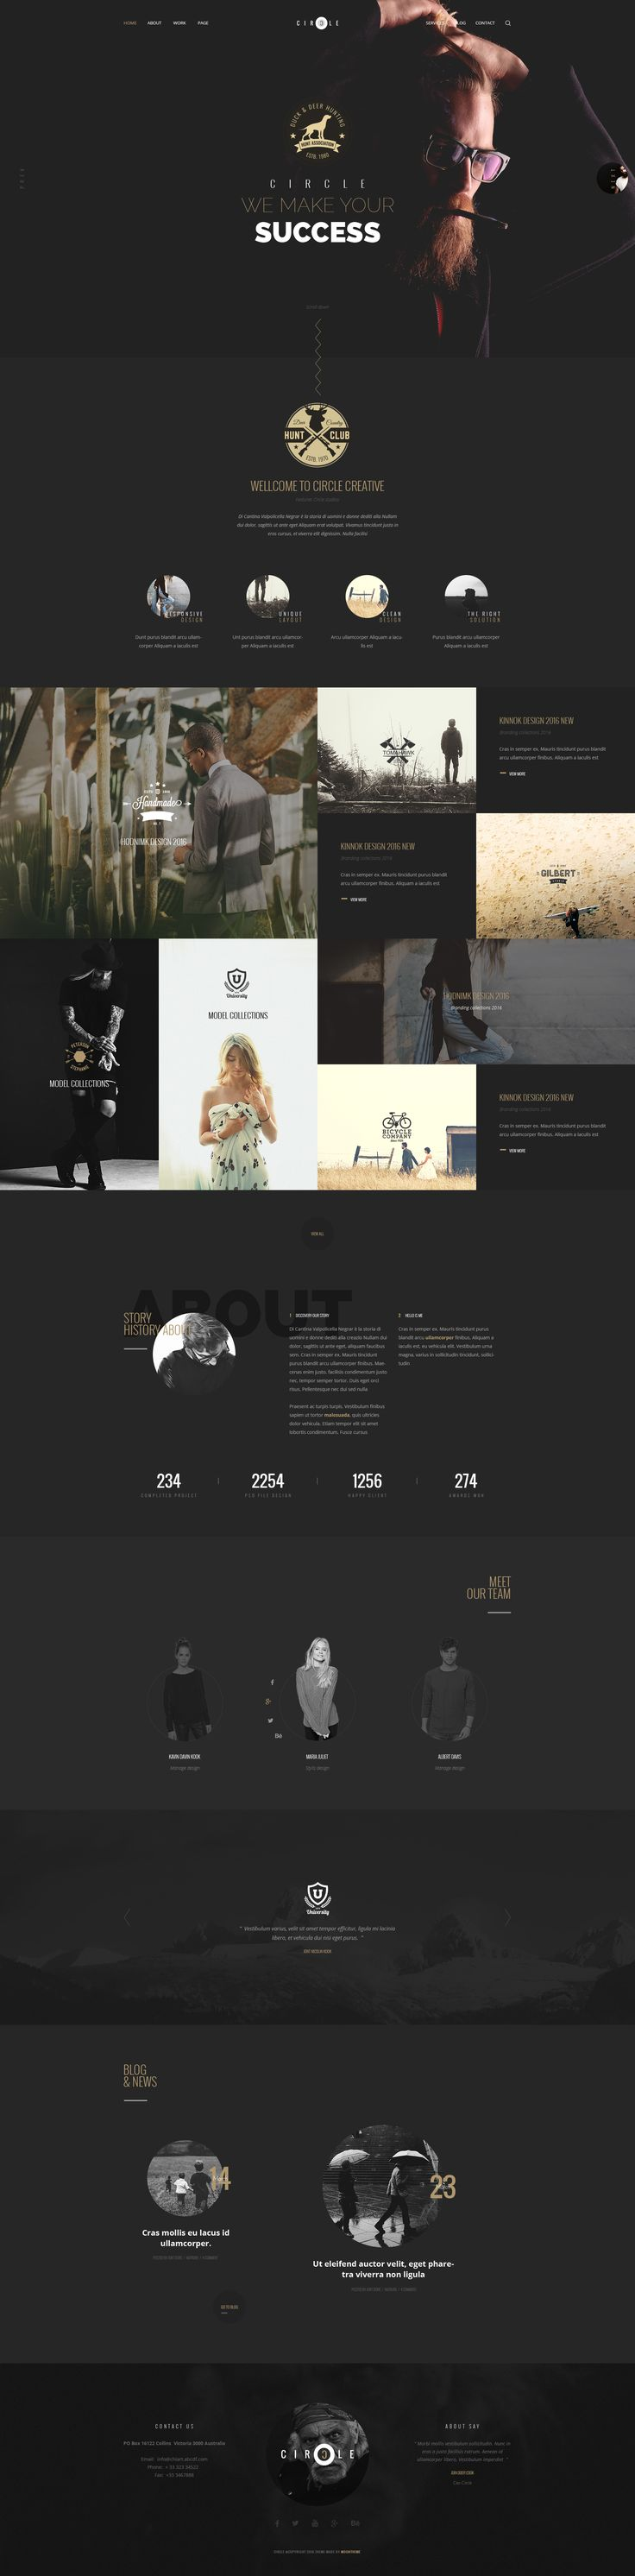 103 best Web images on Pinterest | Editorial design, Web layout and ...